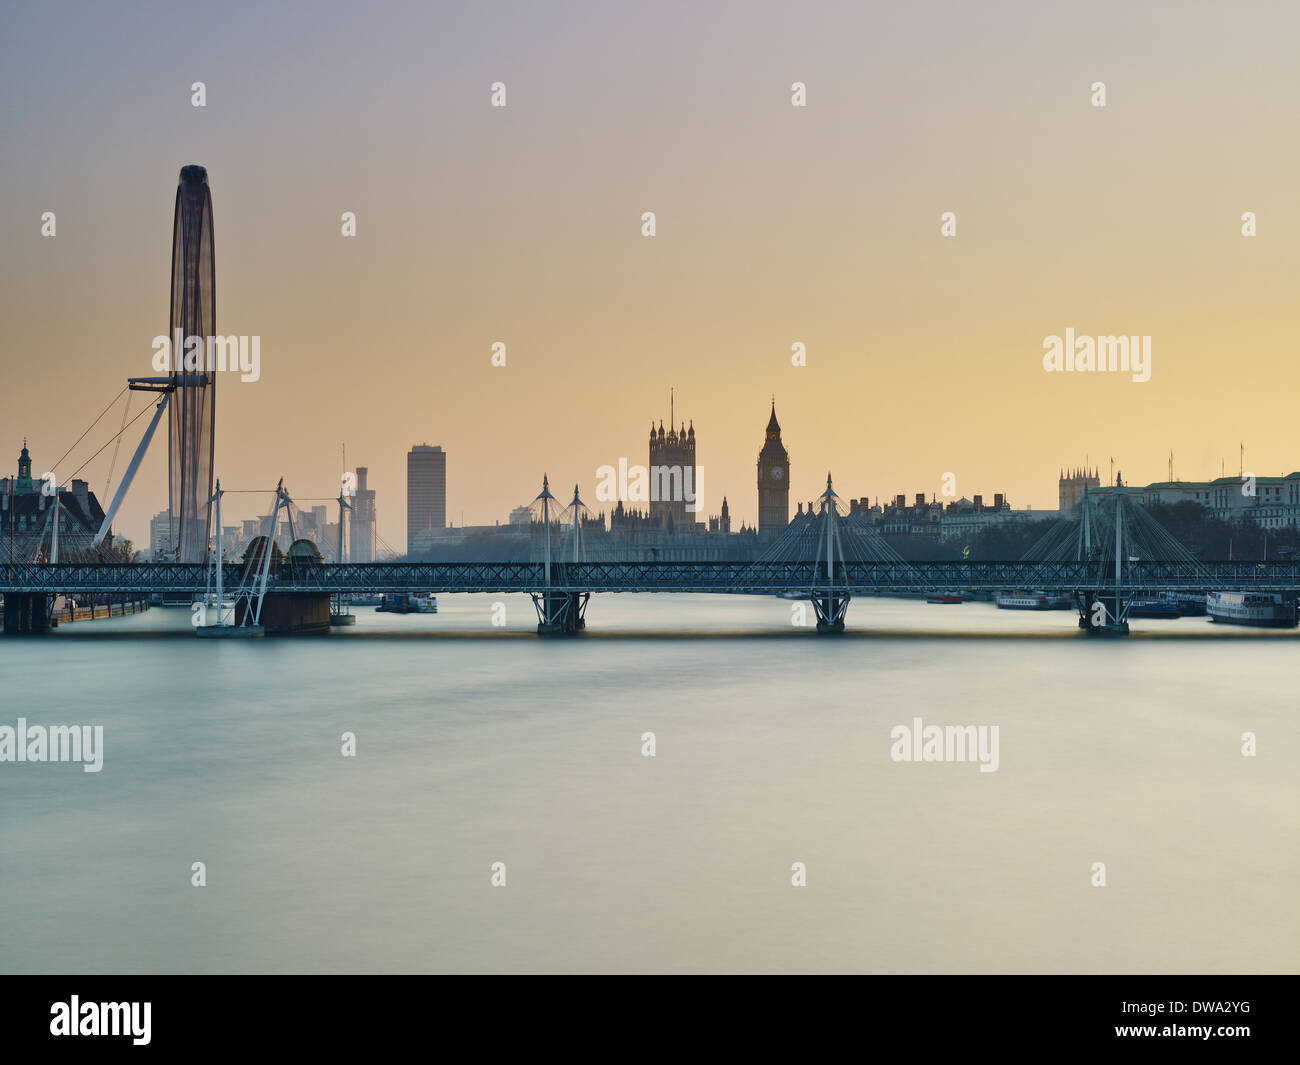 London skyline, River Thames - Stock Image